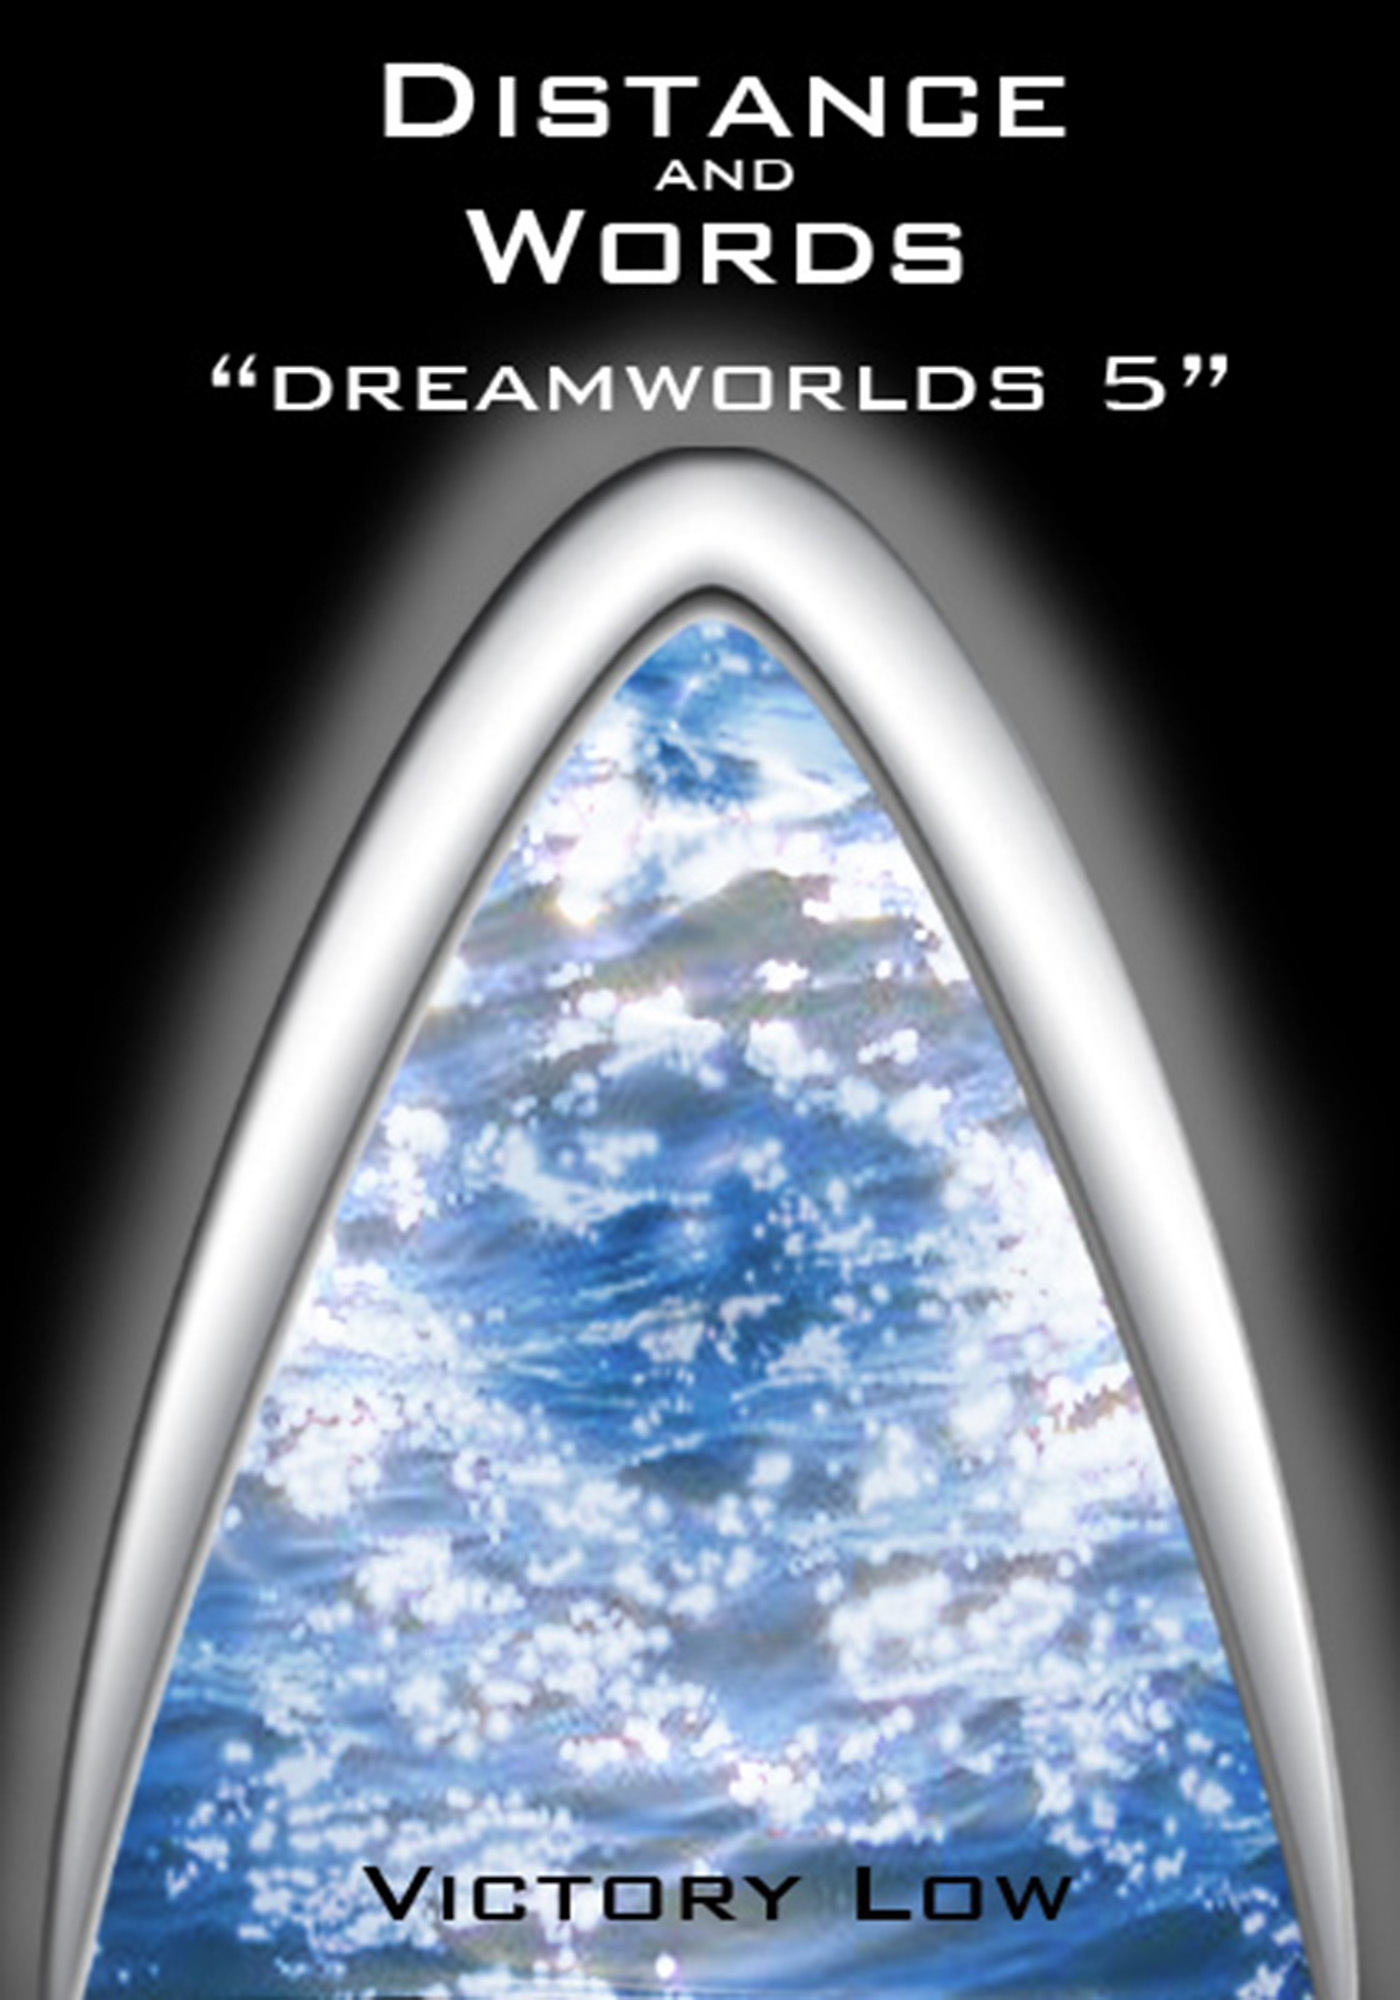 Dreamworlds 5: Distance and Words